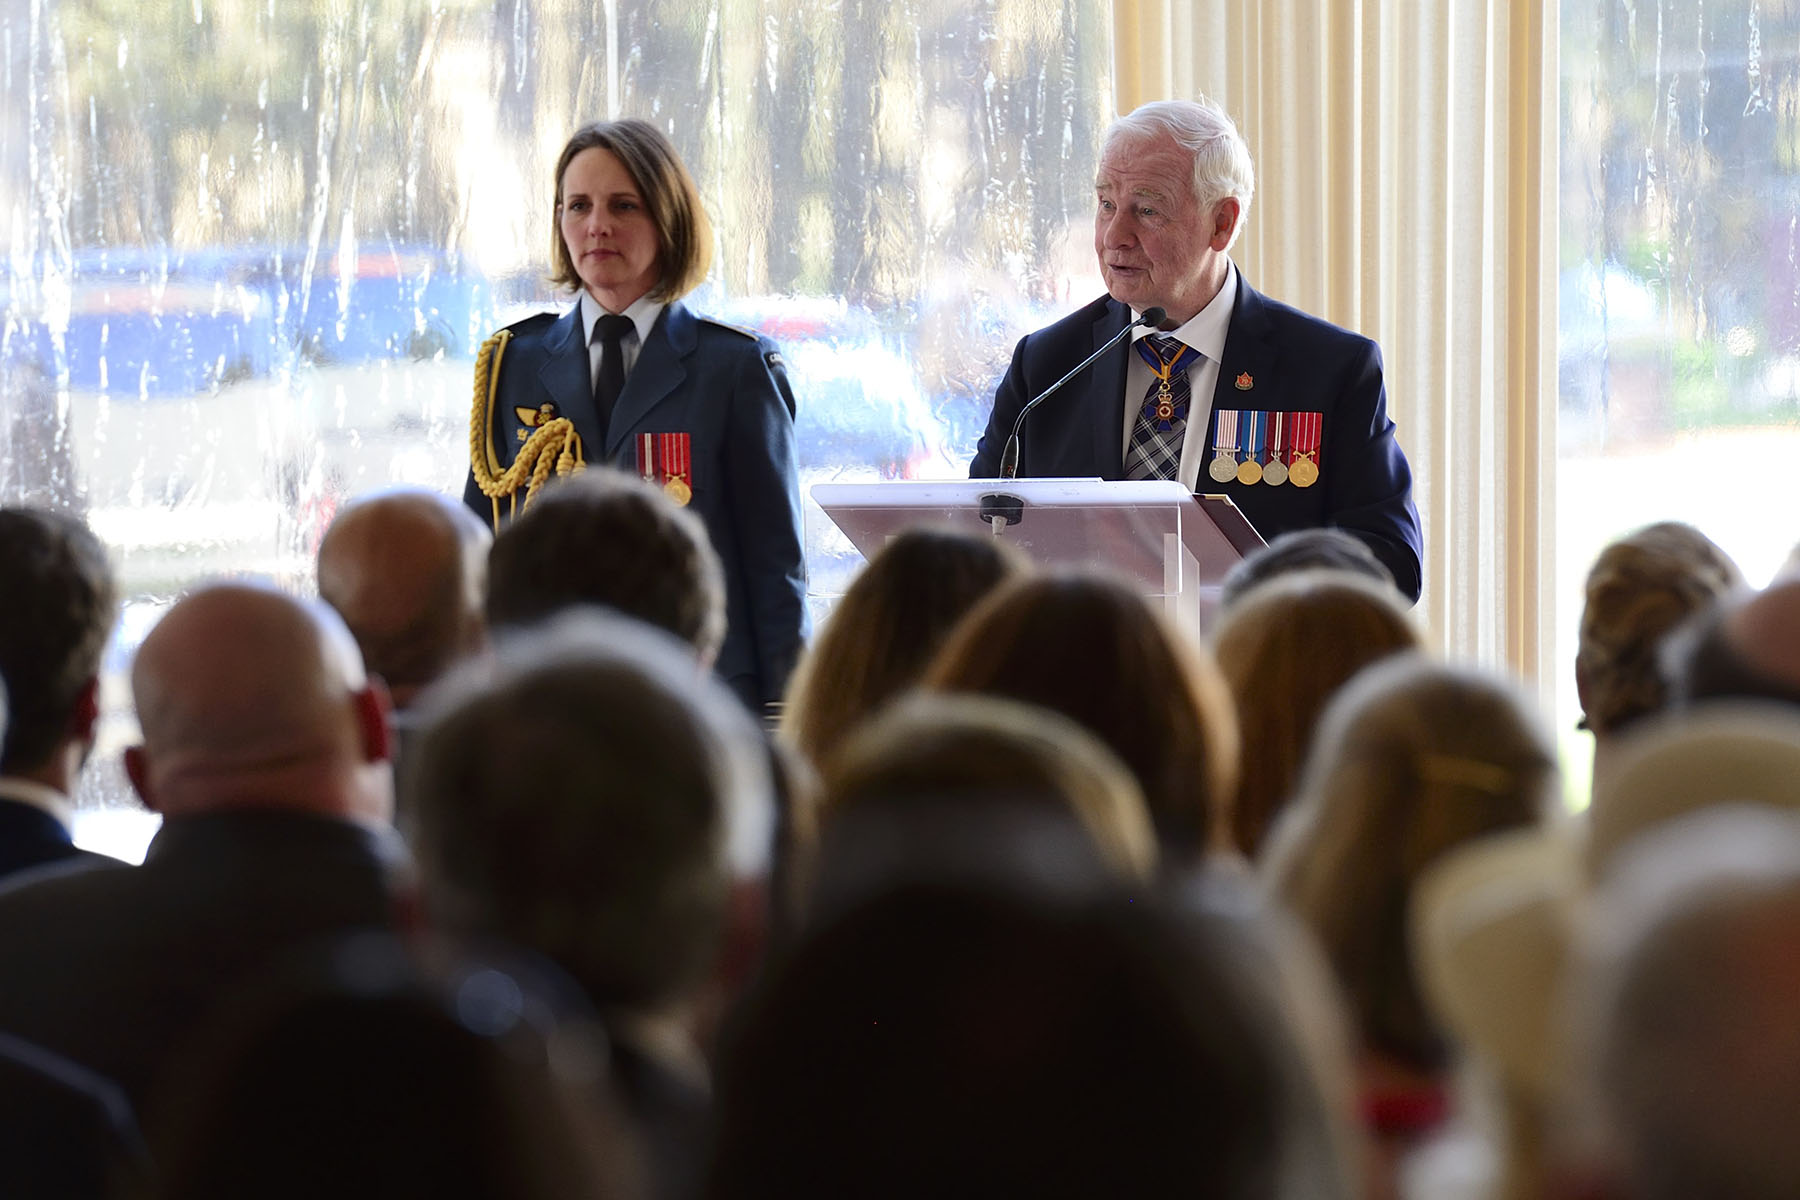 """The Canadian National Vimy Memorial is so important to our country that it was designated a national historic site,"" said His Excellency. ""The Battle of Vimy Ridge marked a significant stage in Canada's evolution. Now, to inform the many thousands of people who visit this site each year, we have this impressive visitor's centre. It will tell this important story to all Canadians, but also to hundreds of thousands of visitors from other nations. To no small degree, the Vimy monument, this historical landscape still scarred by the shells of 100 years ago, and now this education centre represents Canada to the world."""